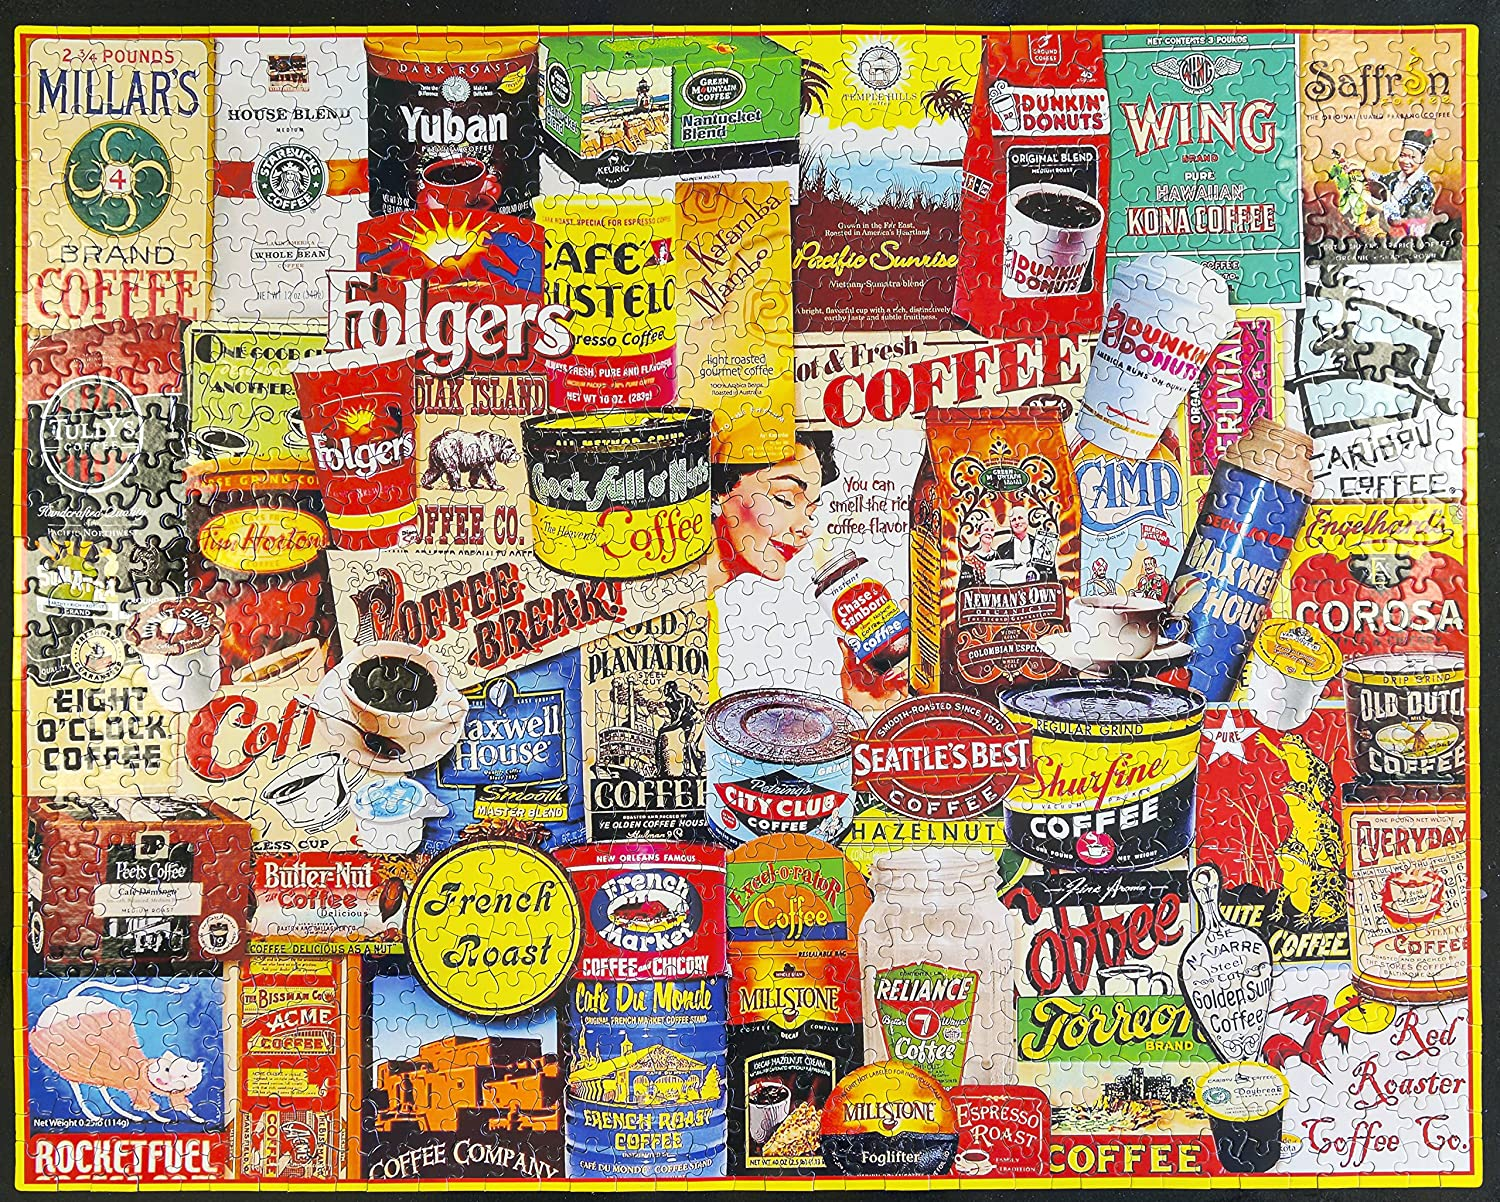 Amazon.com: WHITE MOUNTAIN Puzzles - Great Coffee Brands - 1,000 Piece  Jigsaw Puzzle: Toys & Games